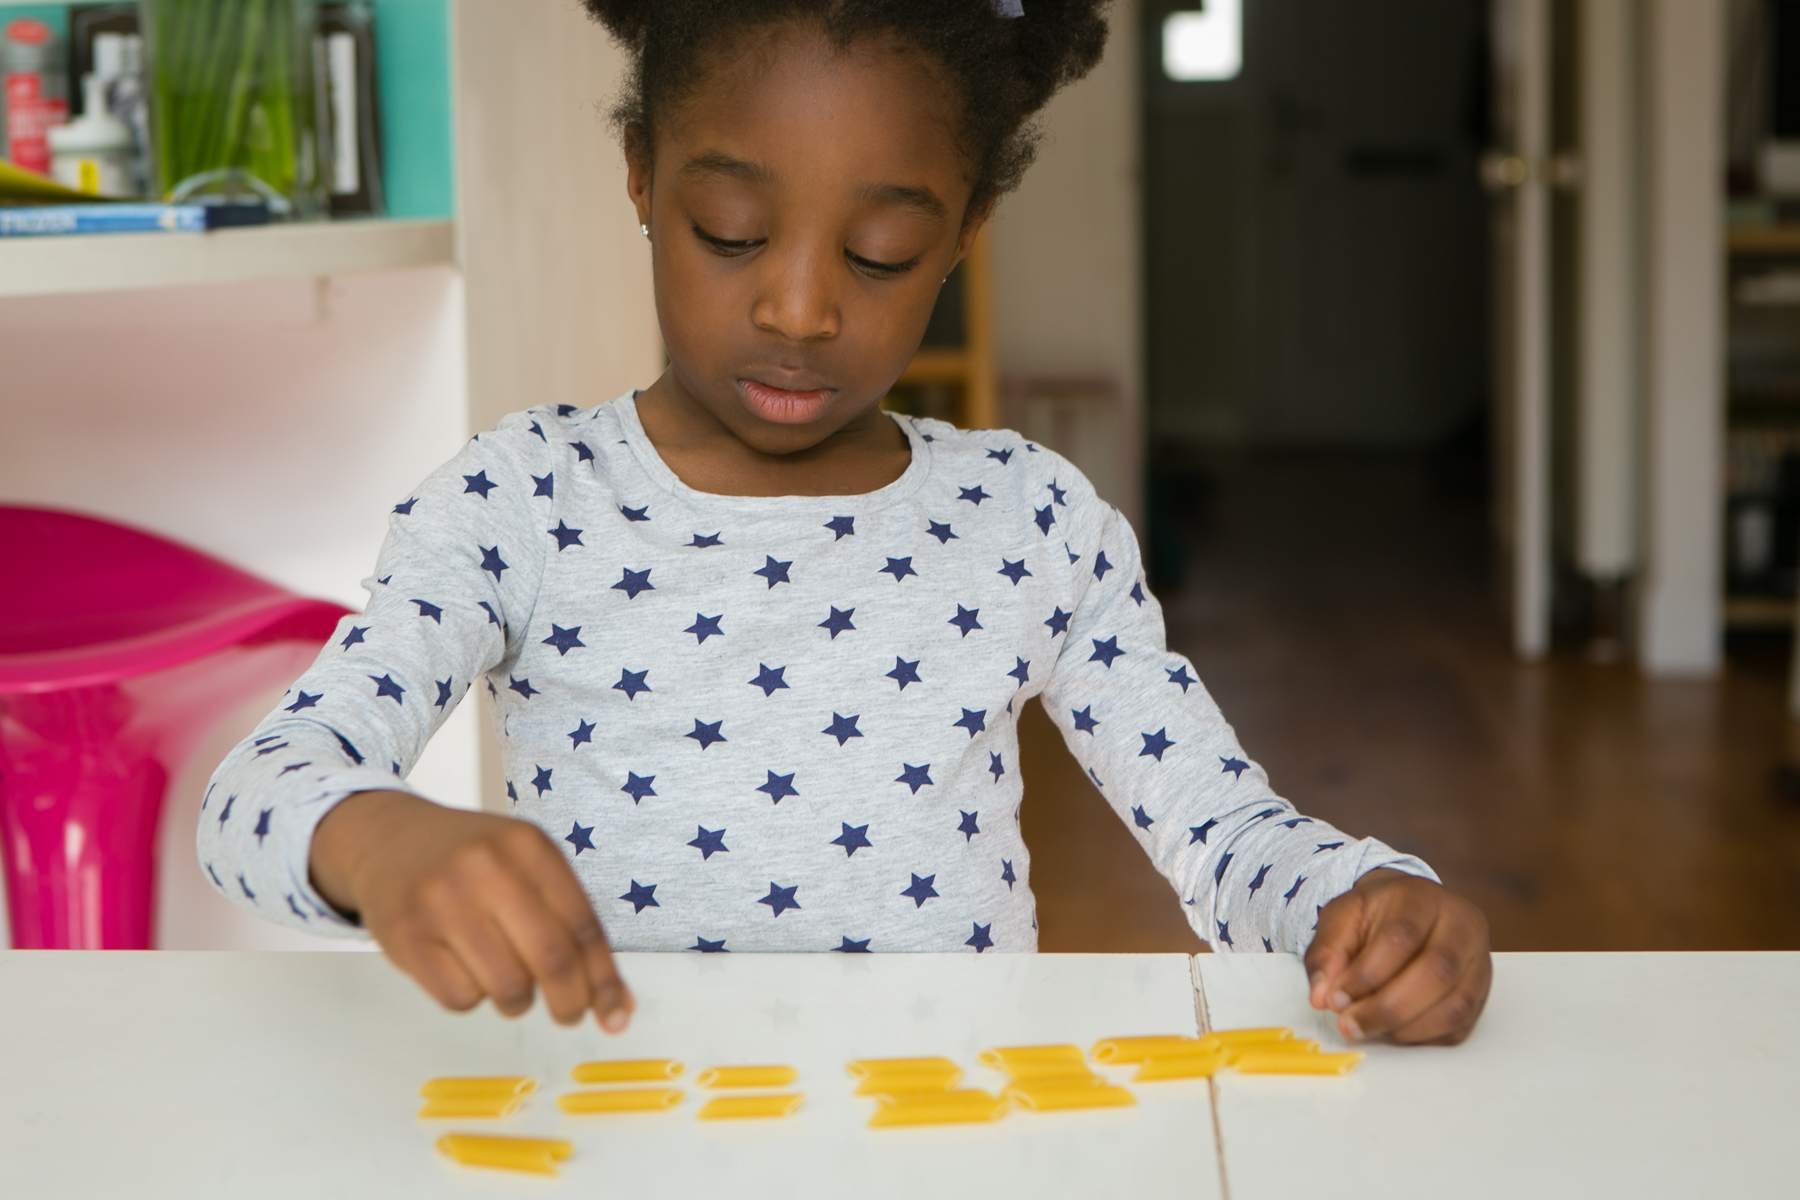 Primary School Maths Aids To Use At Home